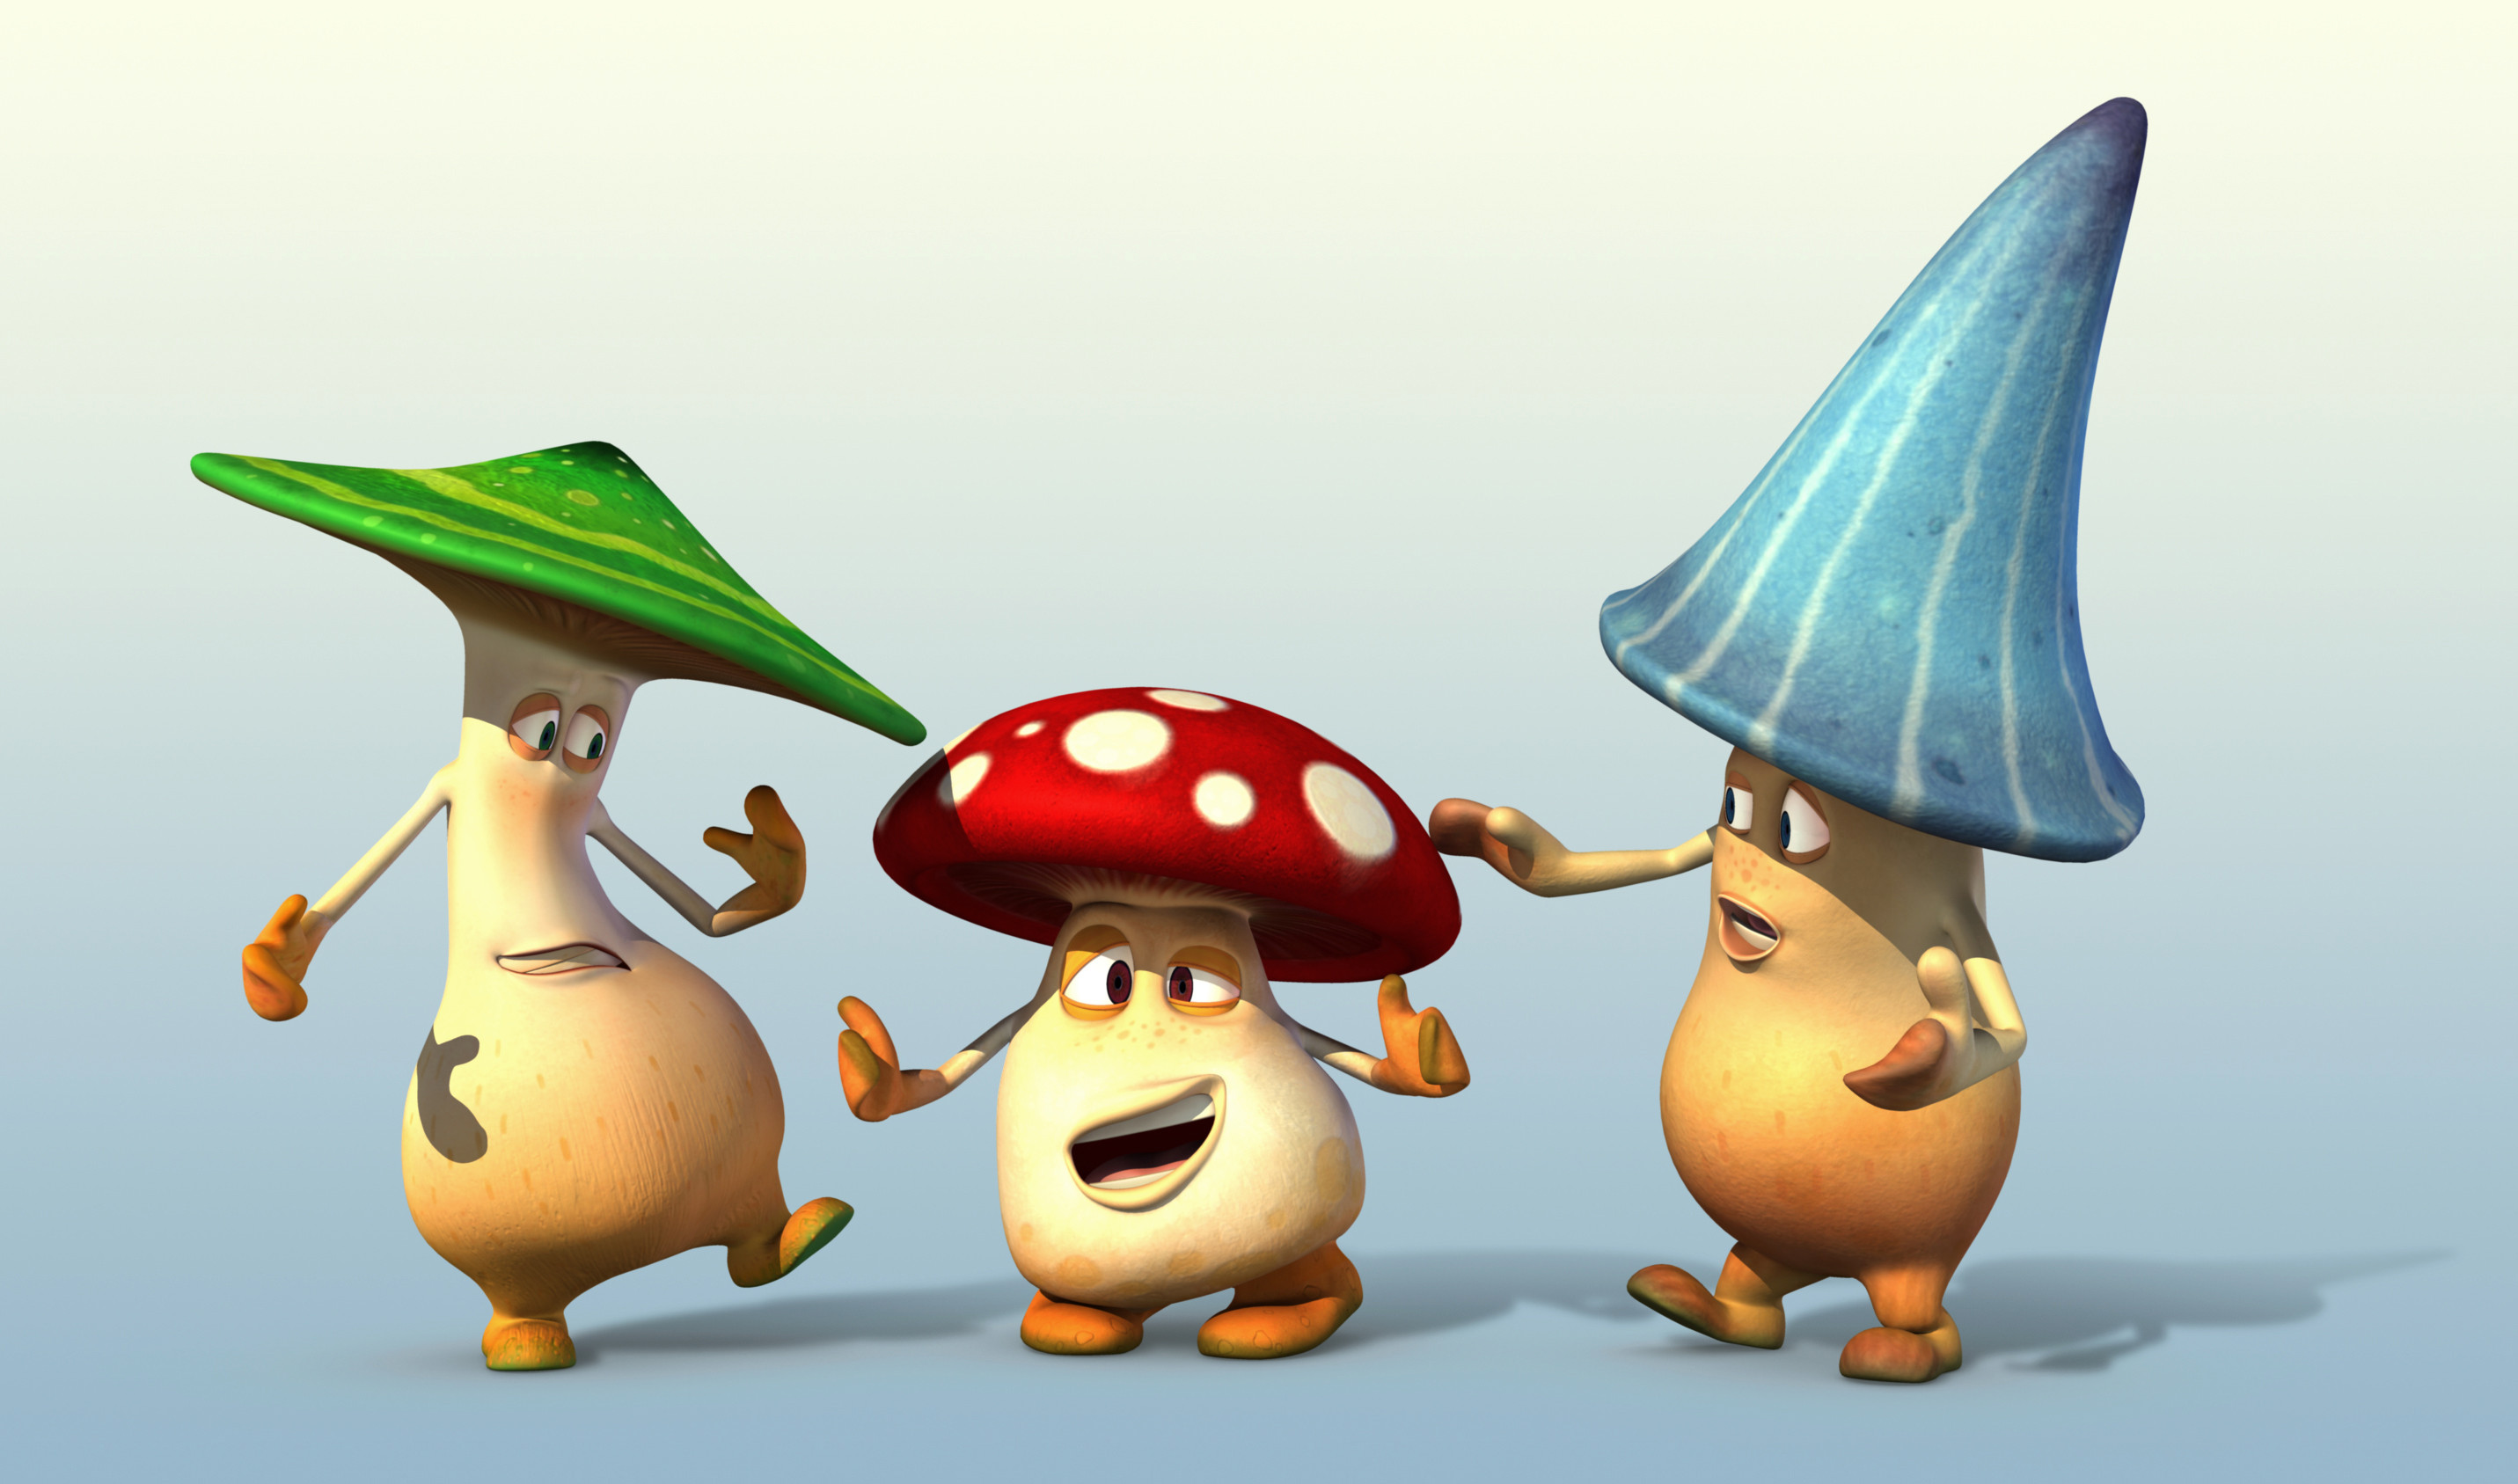 3 Cartoon Character Images : Mushroom cartoon characters d ma